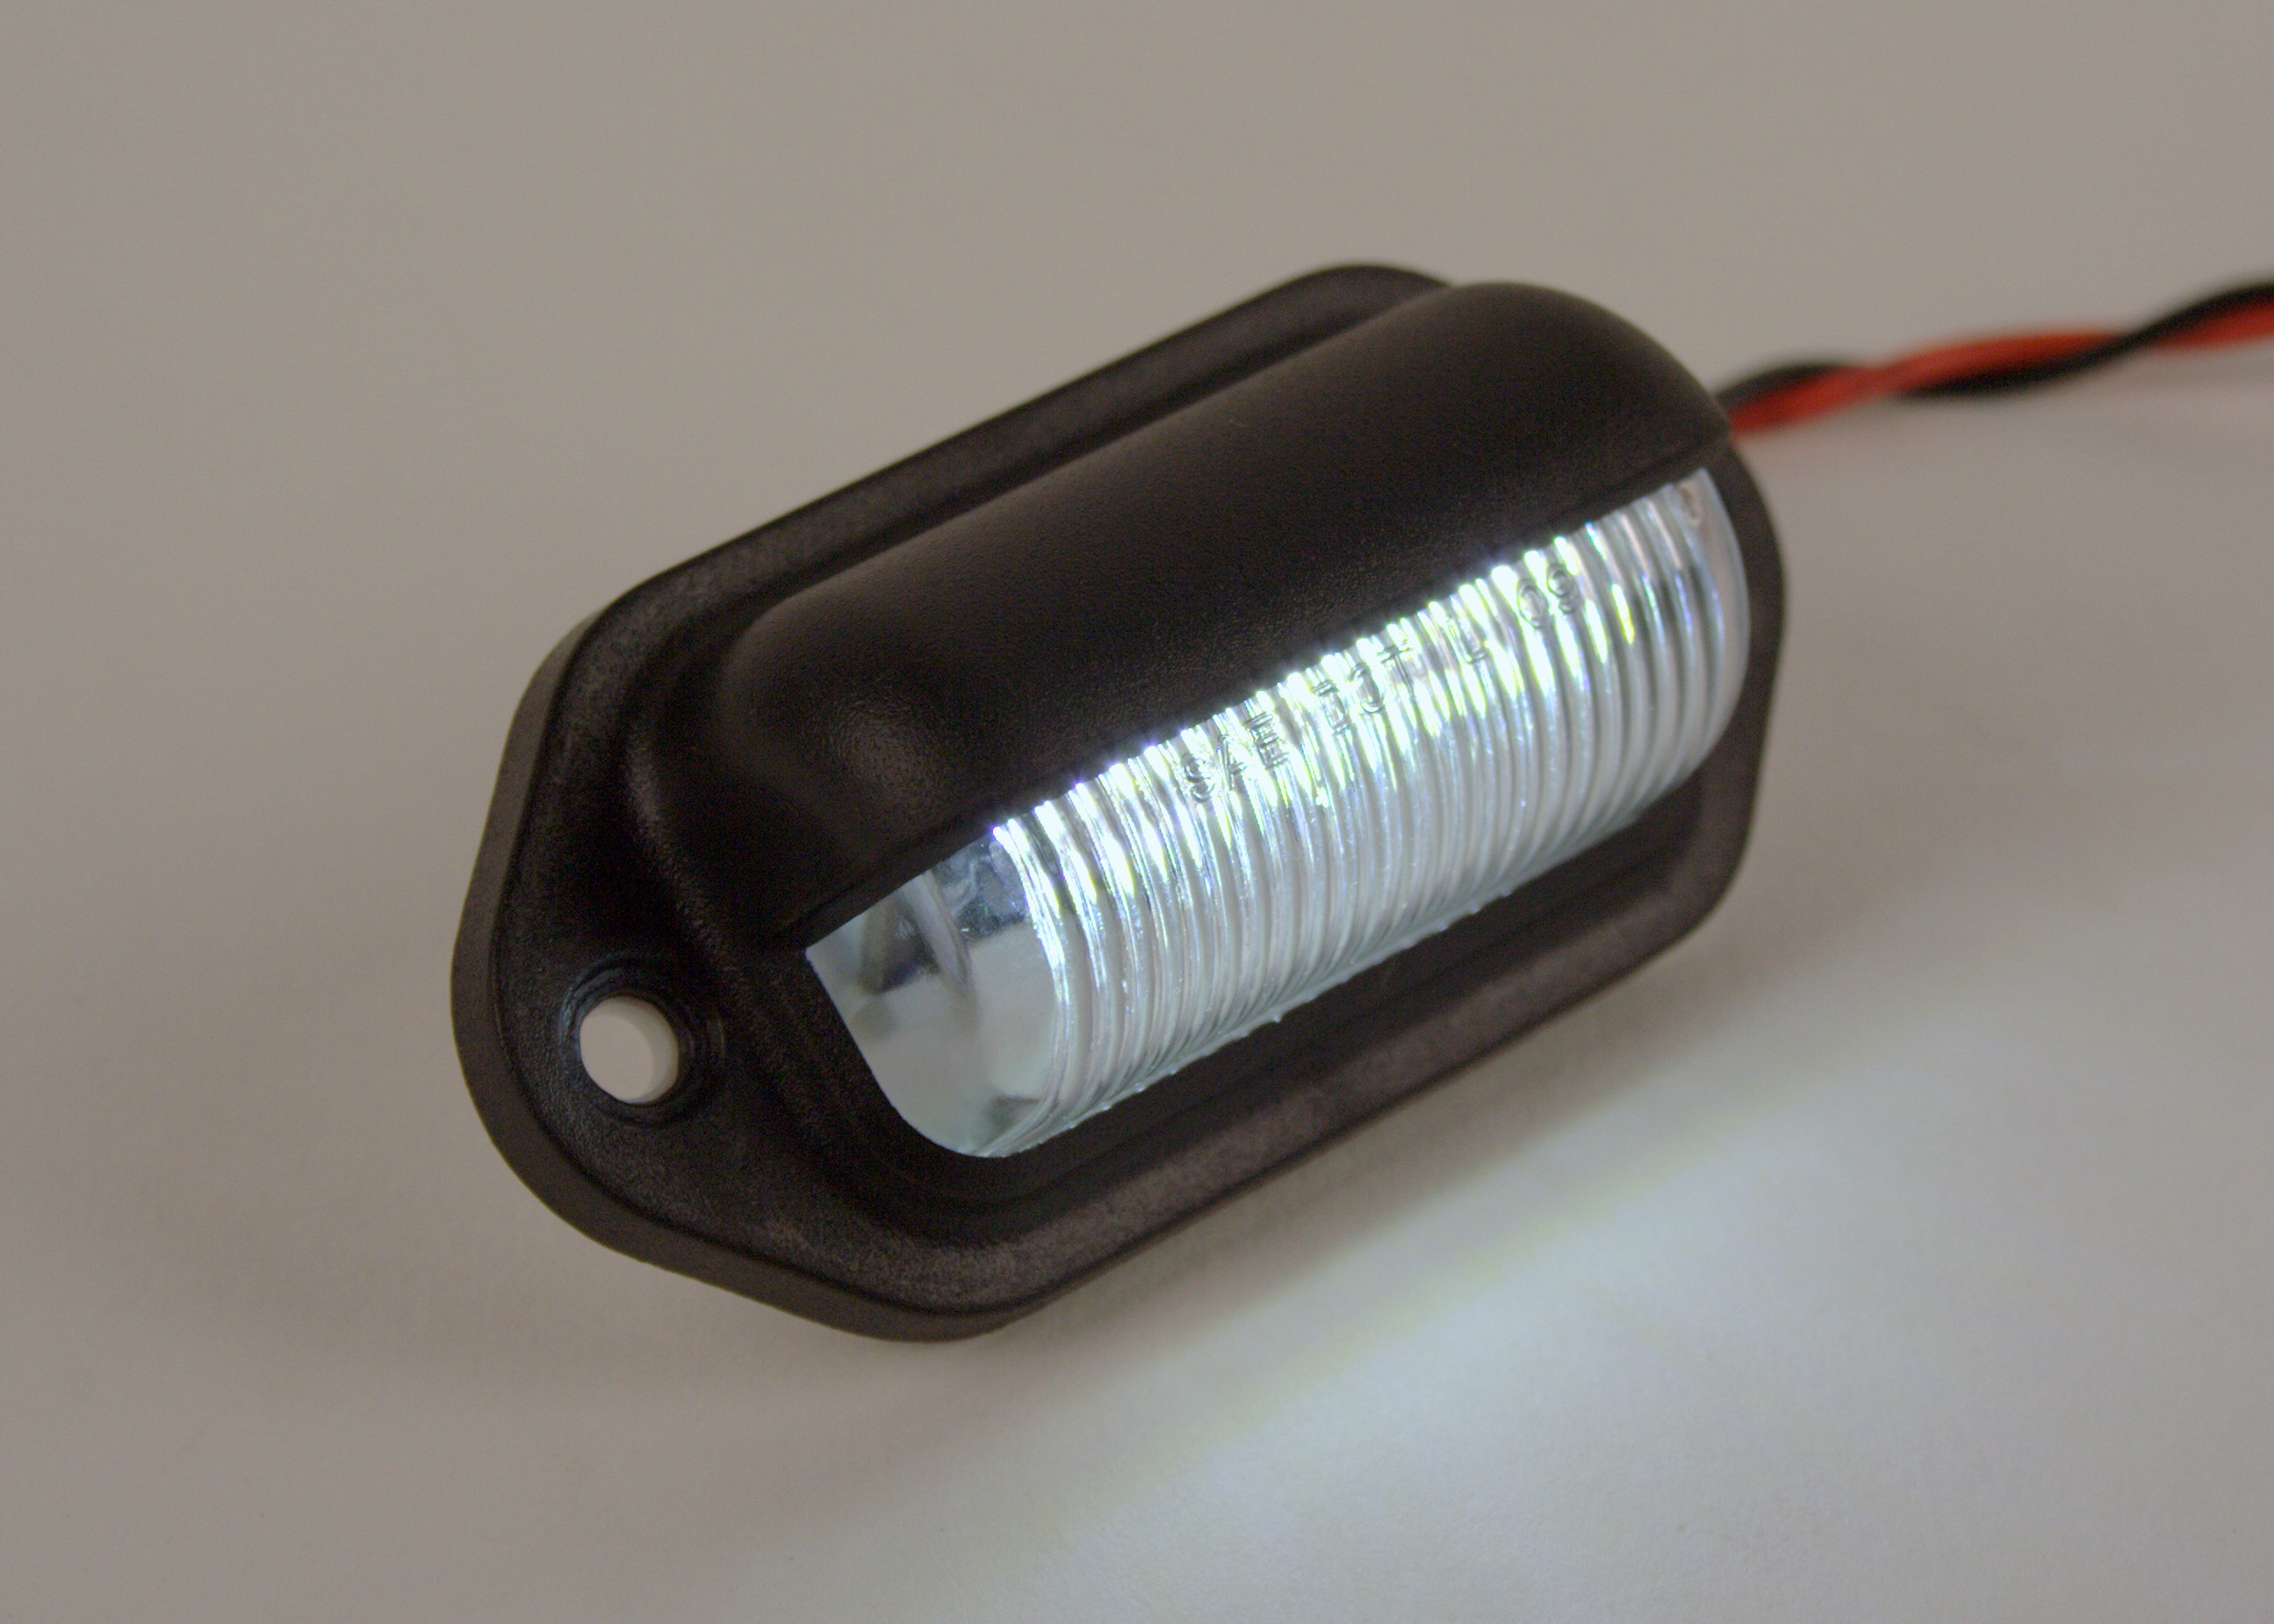 x volt white lights warm bicycle torch mes ad lamp led no light polarity products screw